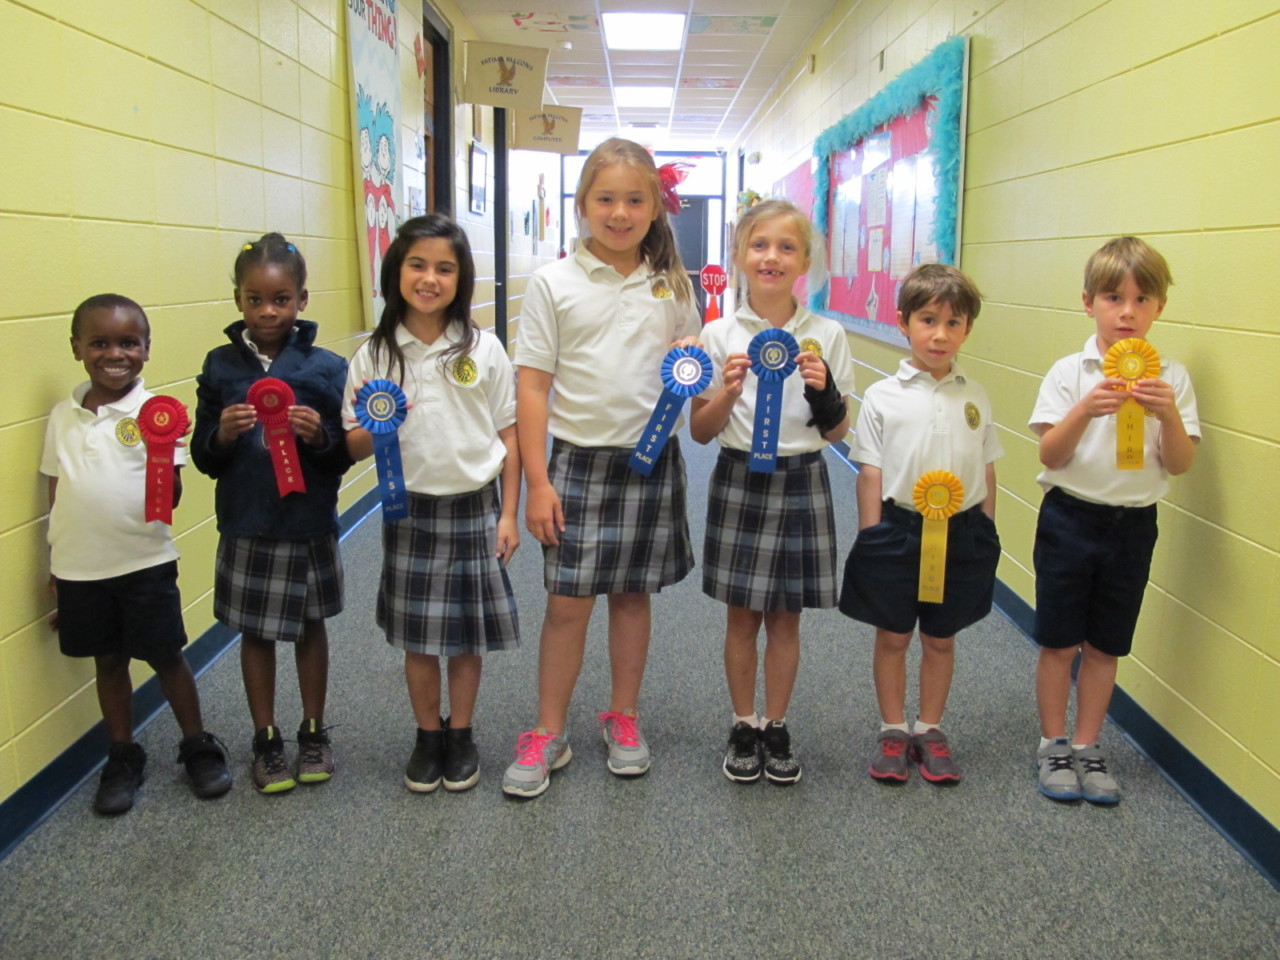 DJ Jones, Amani Jones, Bella Spinner, Elizabeth Mustered, Emerson Yelverton, Noah Jarecke, and Mathis Jarecke hold their ribbons from the Reading Fair